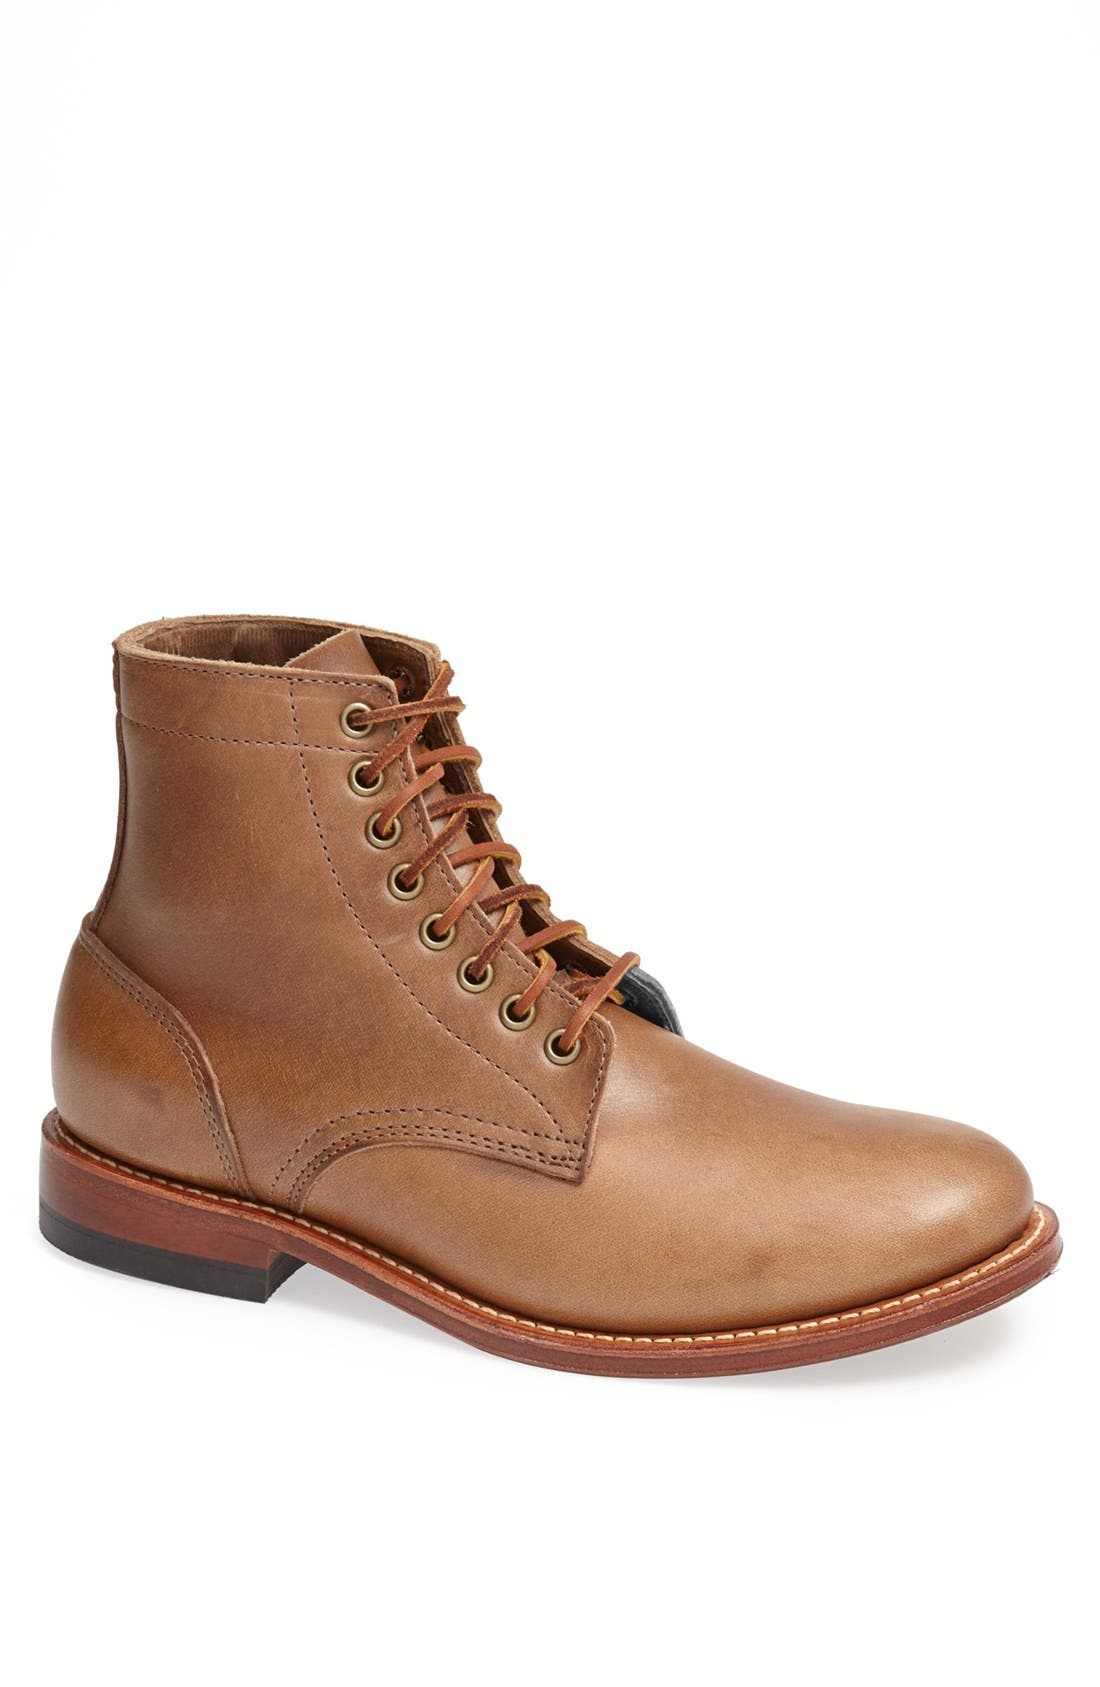 OAK STREET BOOTMAKERS Plain Toe Trench Boot in Natural Brown